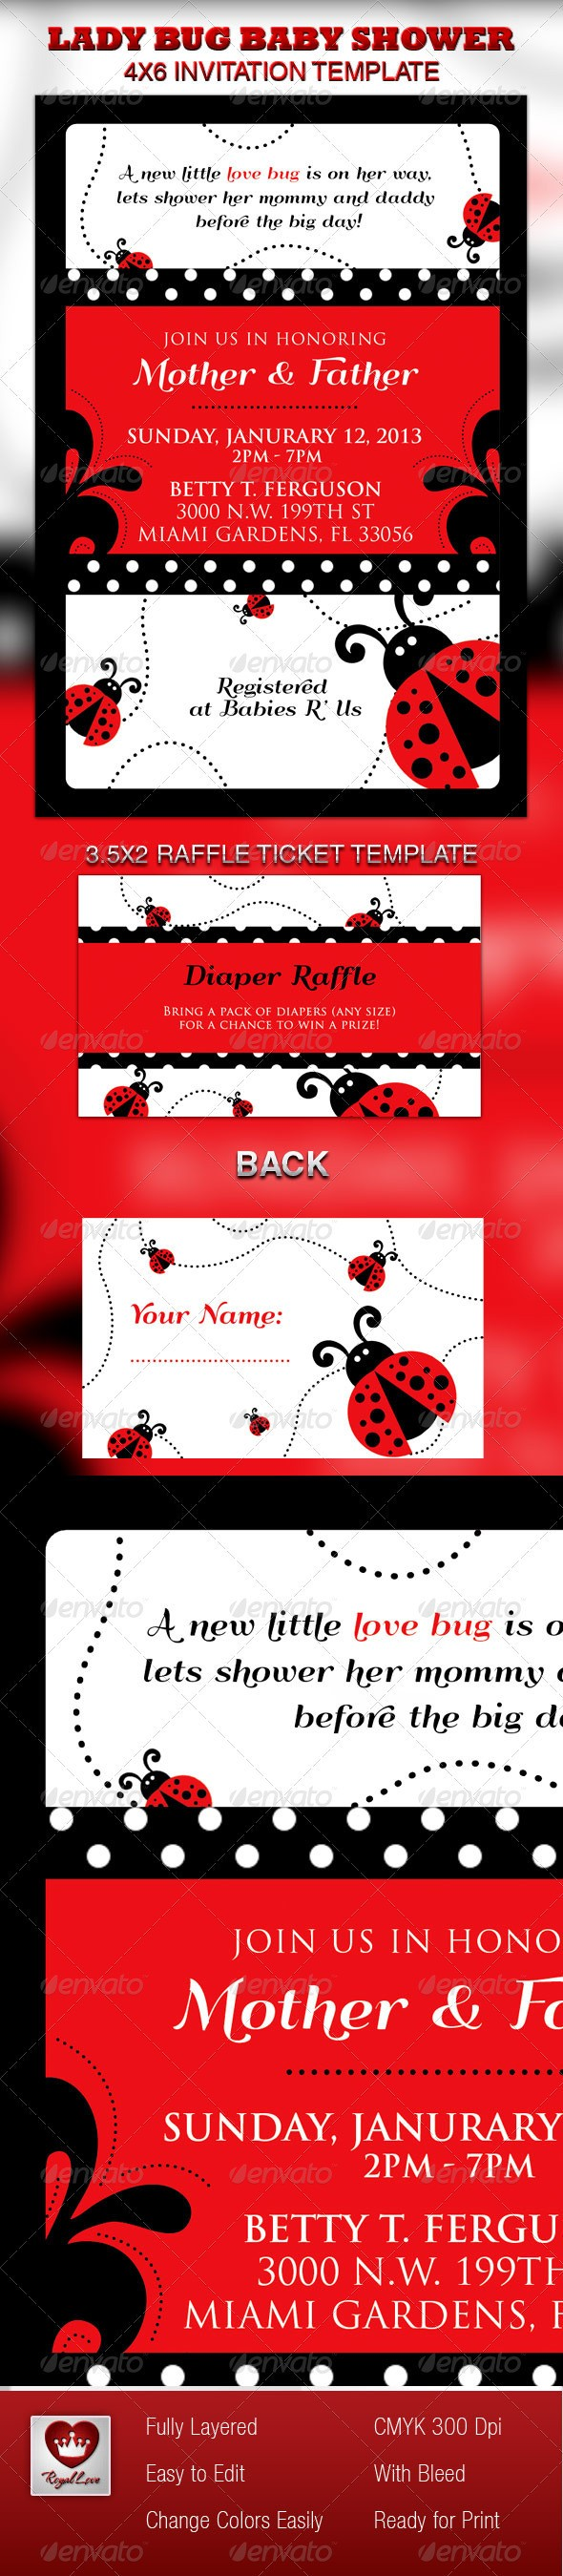 Free Printable Ladybug Baby Shower Invitations Templates | baby ...